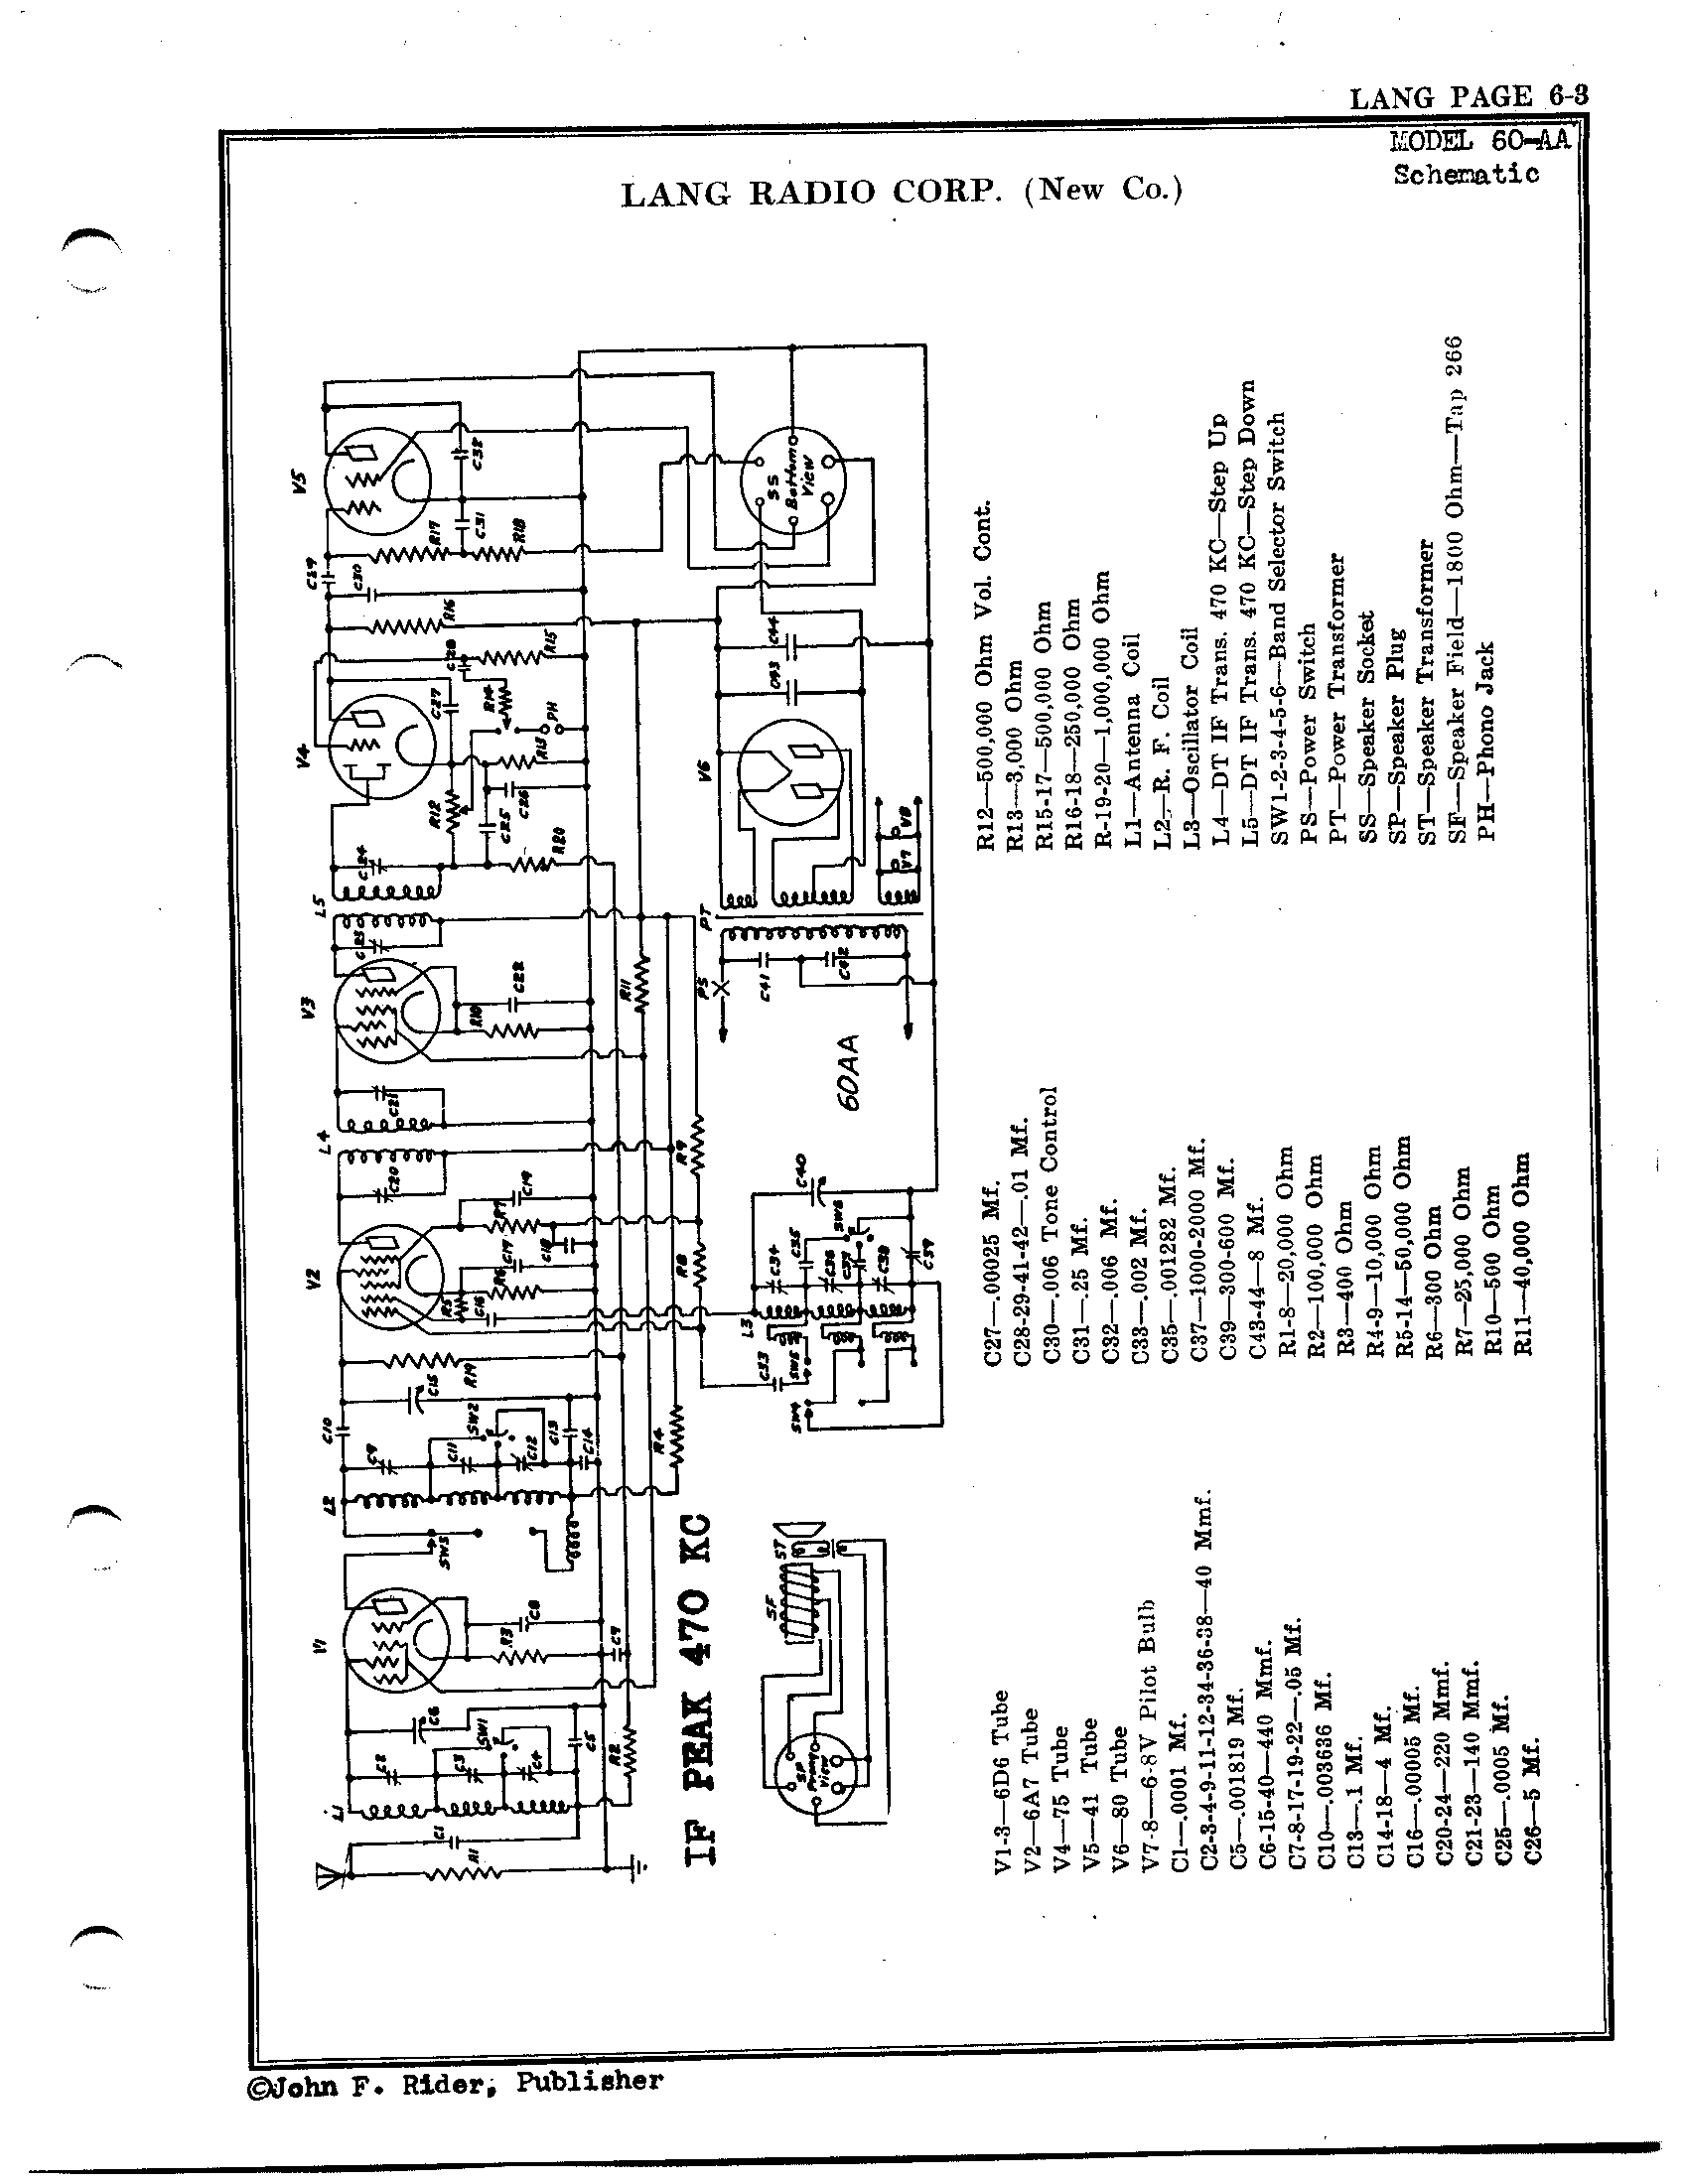 Lang Radio Co. 60-AA Schematic